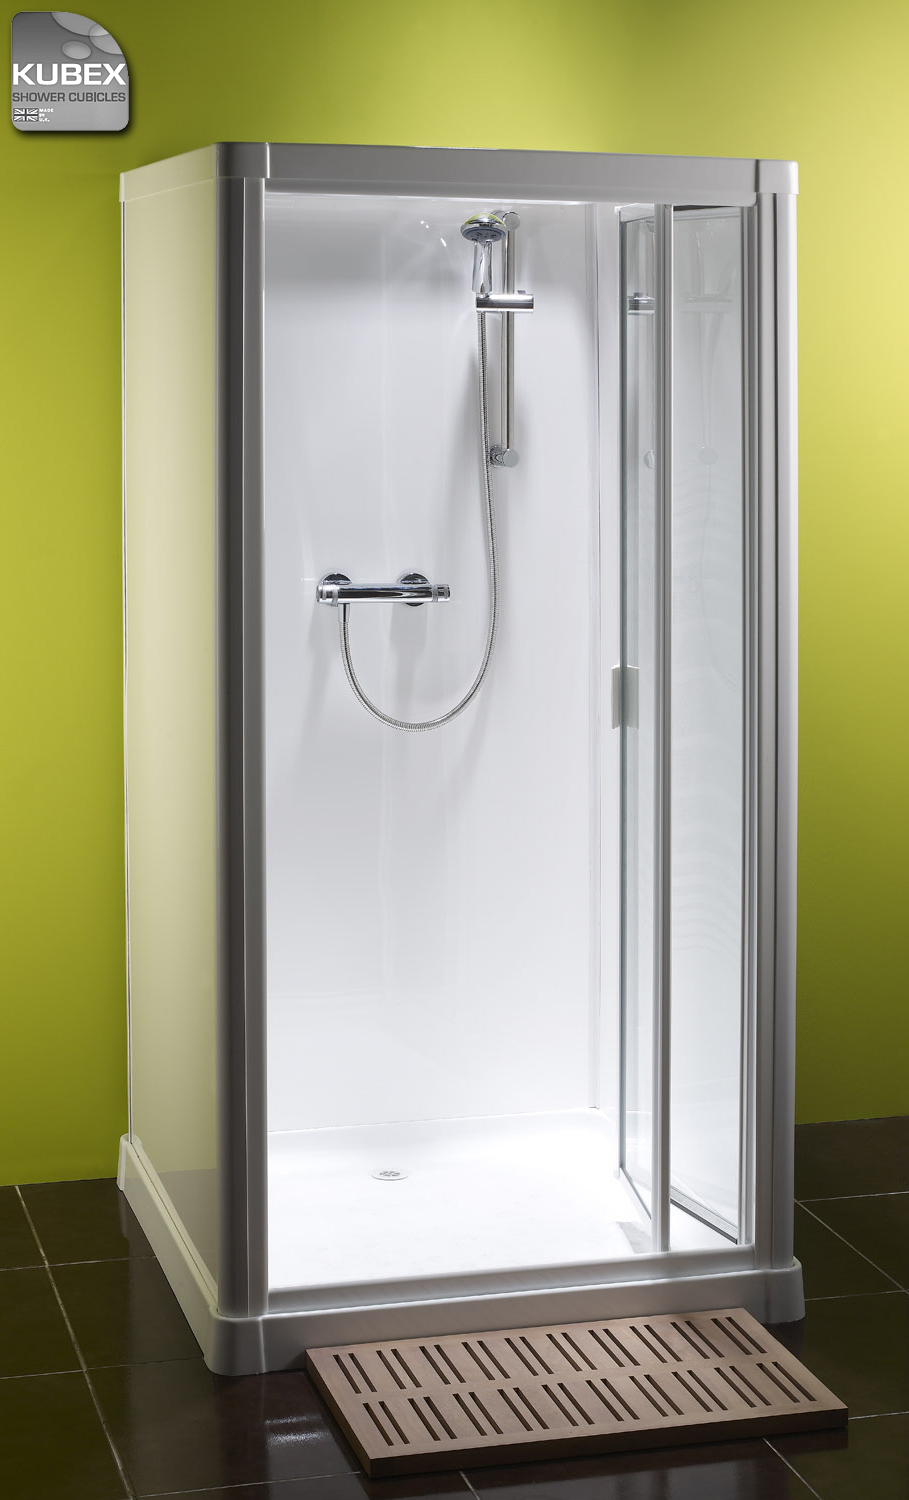 Profile 900 shower cubicle by Kubex Leak free self